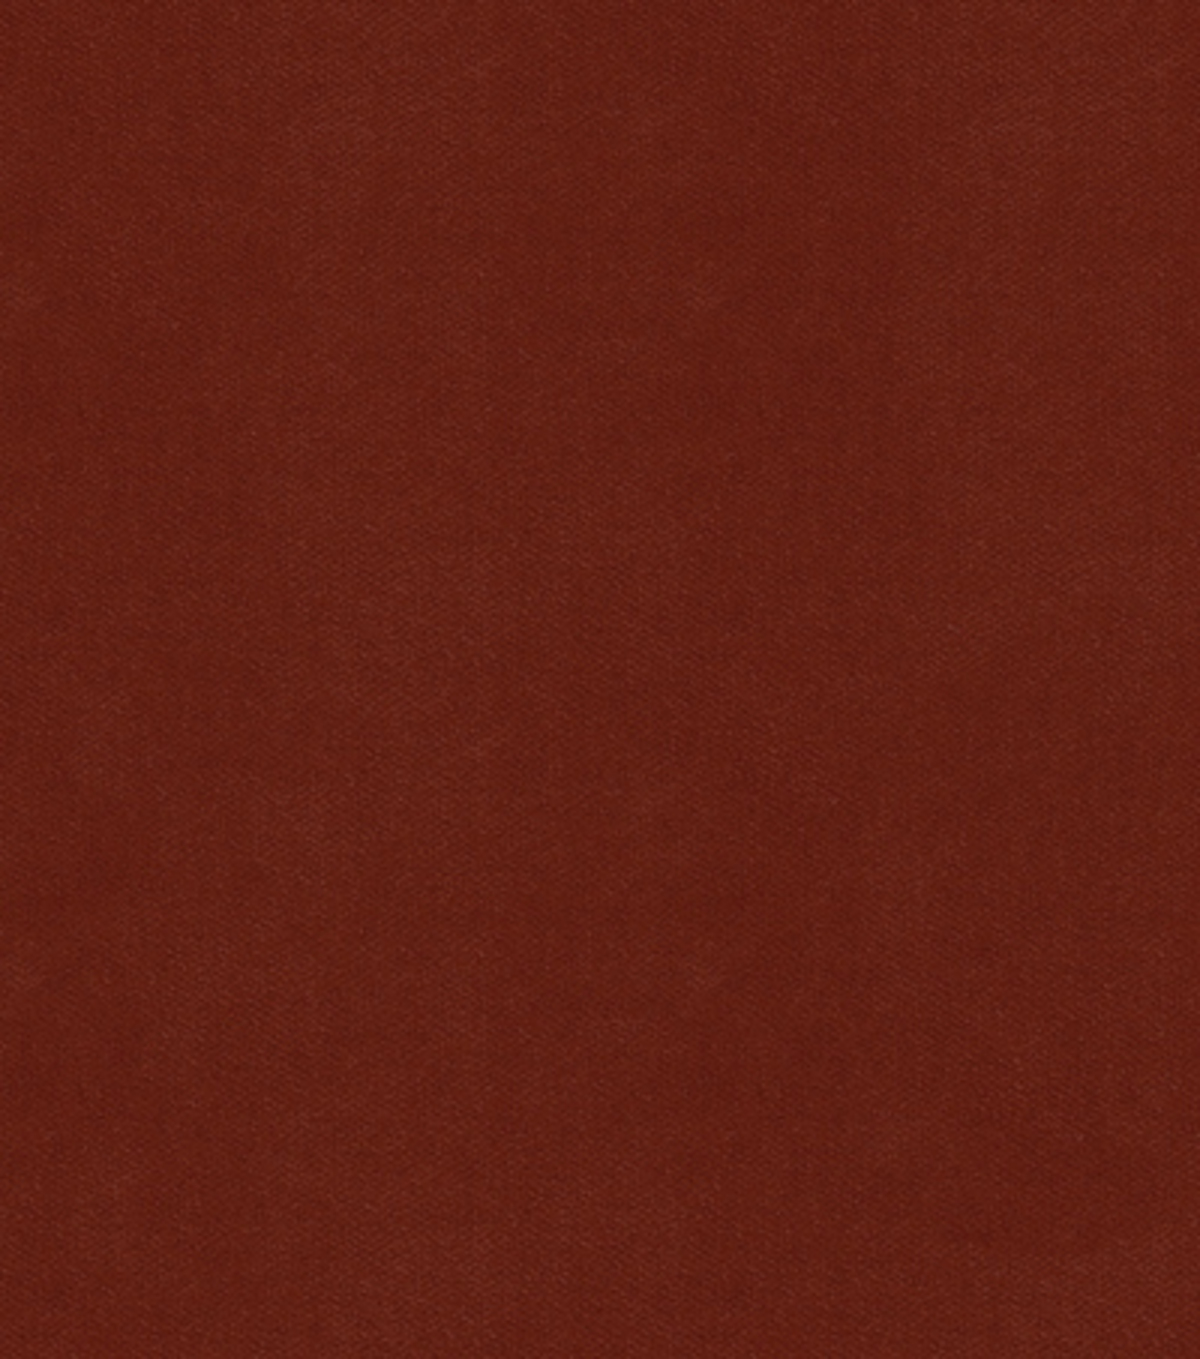 Home Decor 8\u0022x8\u0022 Fabric Swatch-Como-191-Paprika